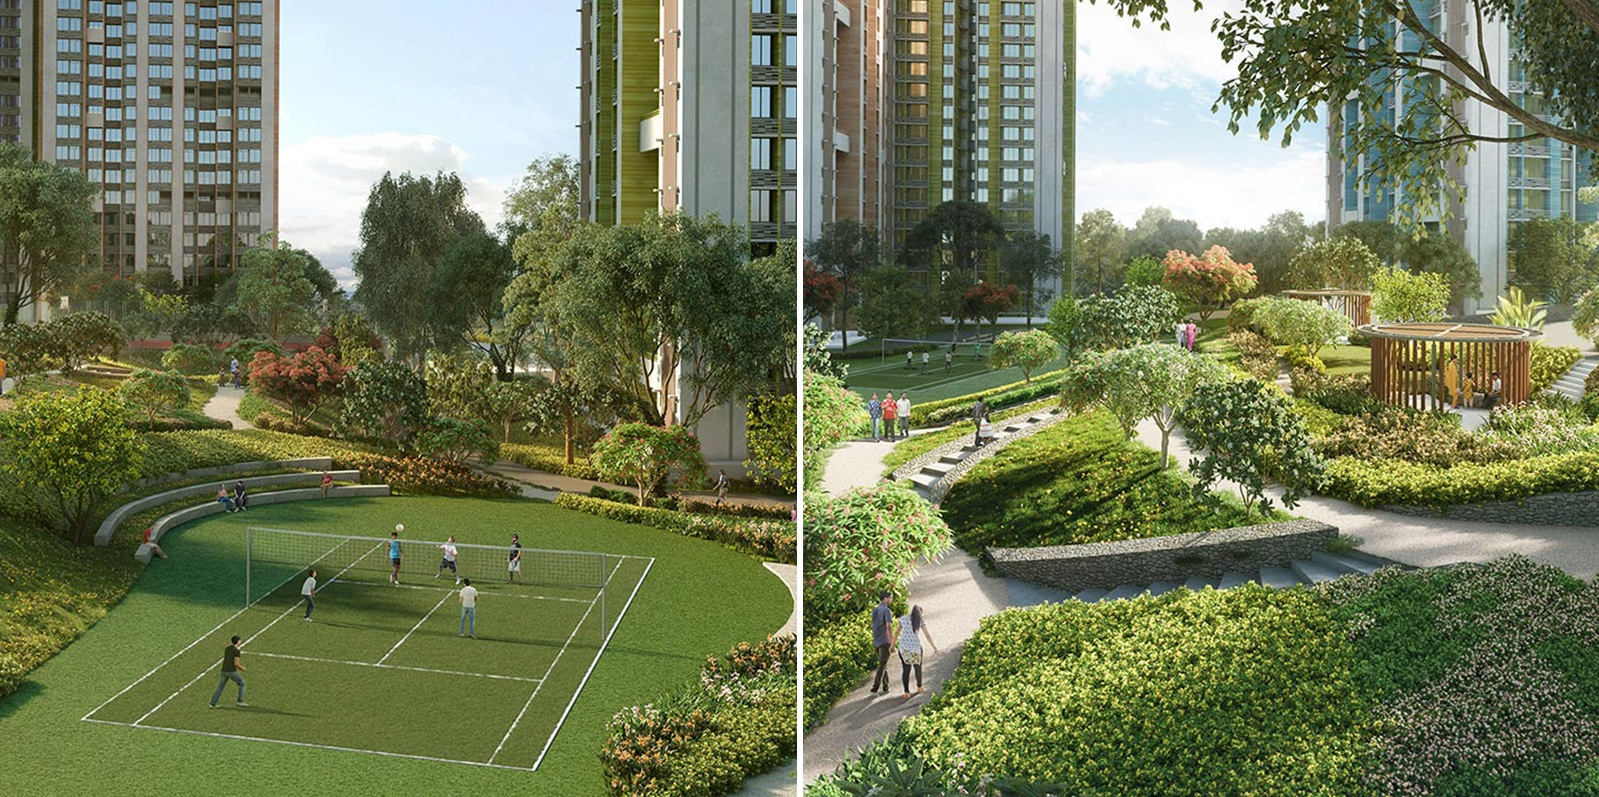 wadhwa wise city south block phase 1 b1 wing a2 amenities features9